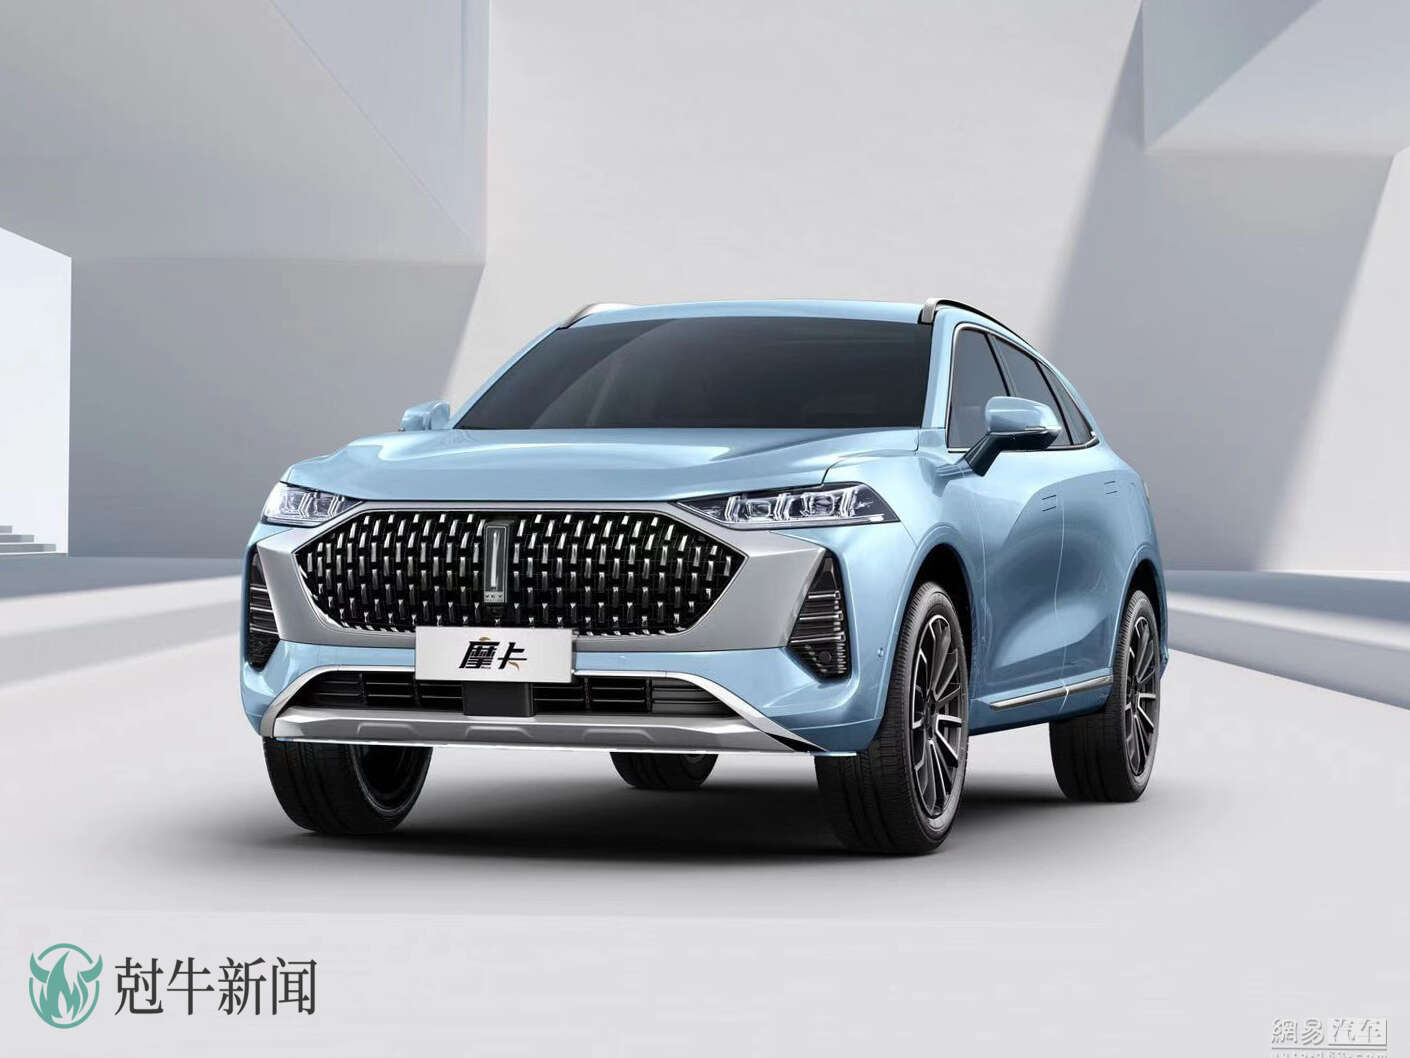 Following up on its announcement of three new cars with coffee-themed named, Chinese carmaker Wey has unveiled the first of them, named Mocha Hybrid.